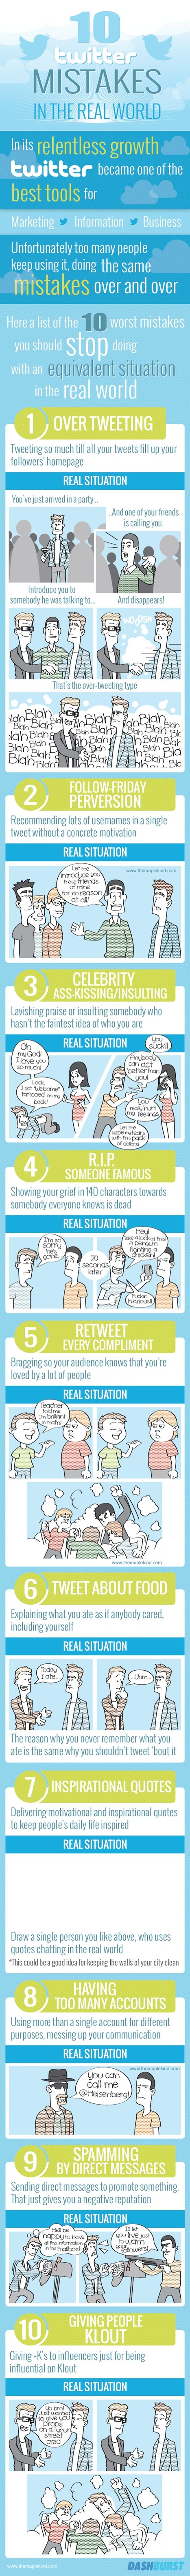 Infographic: 10 Twitter Mistakes -  DashBurst & The Maple Kind | Twitter | Scoop.it